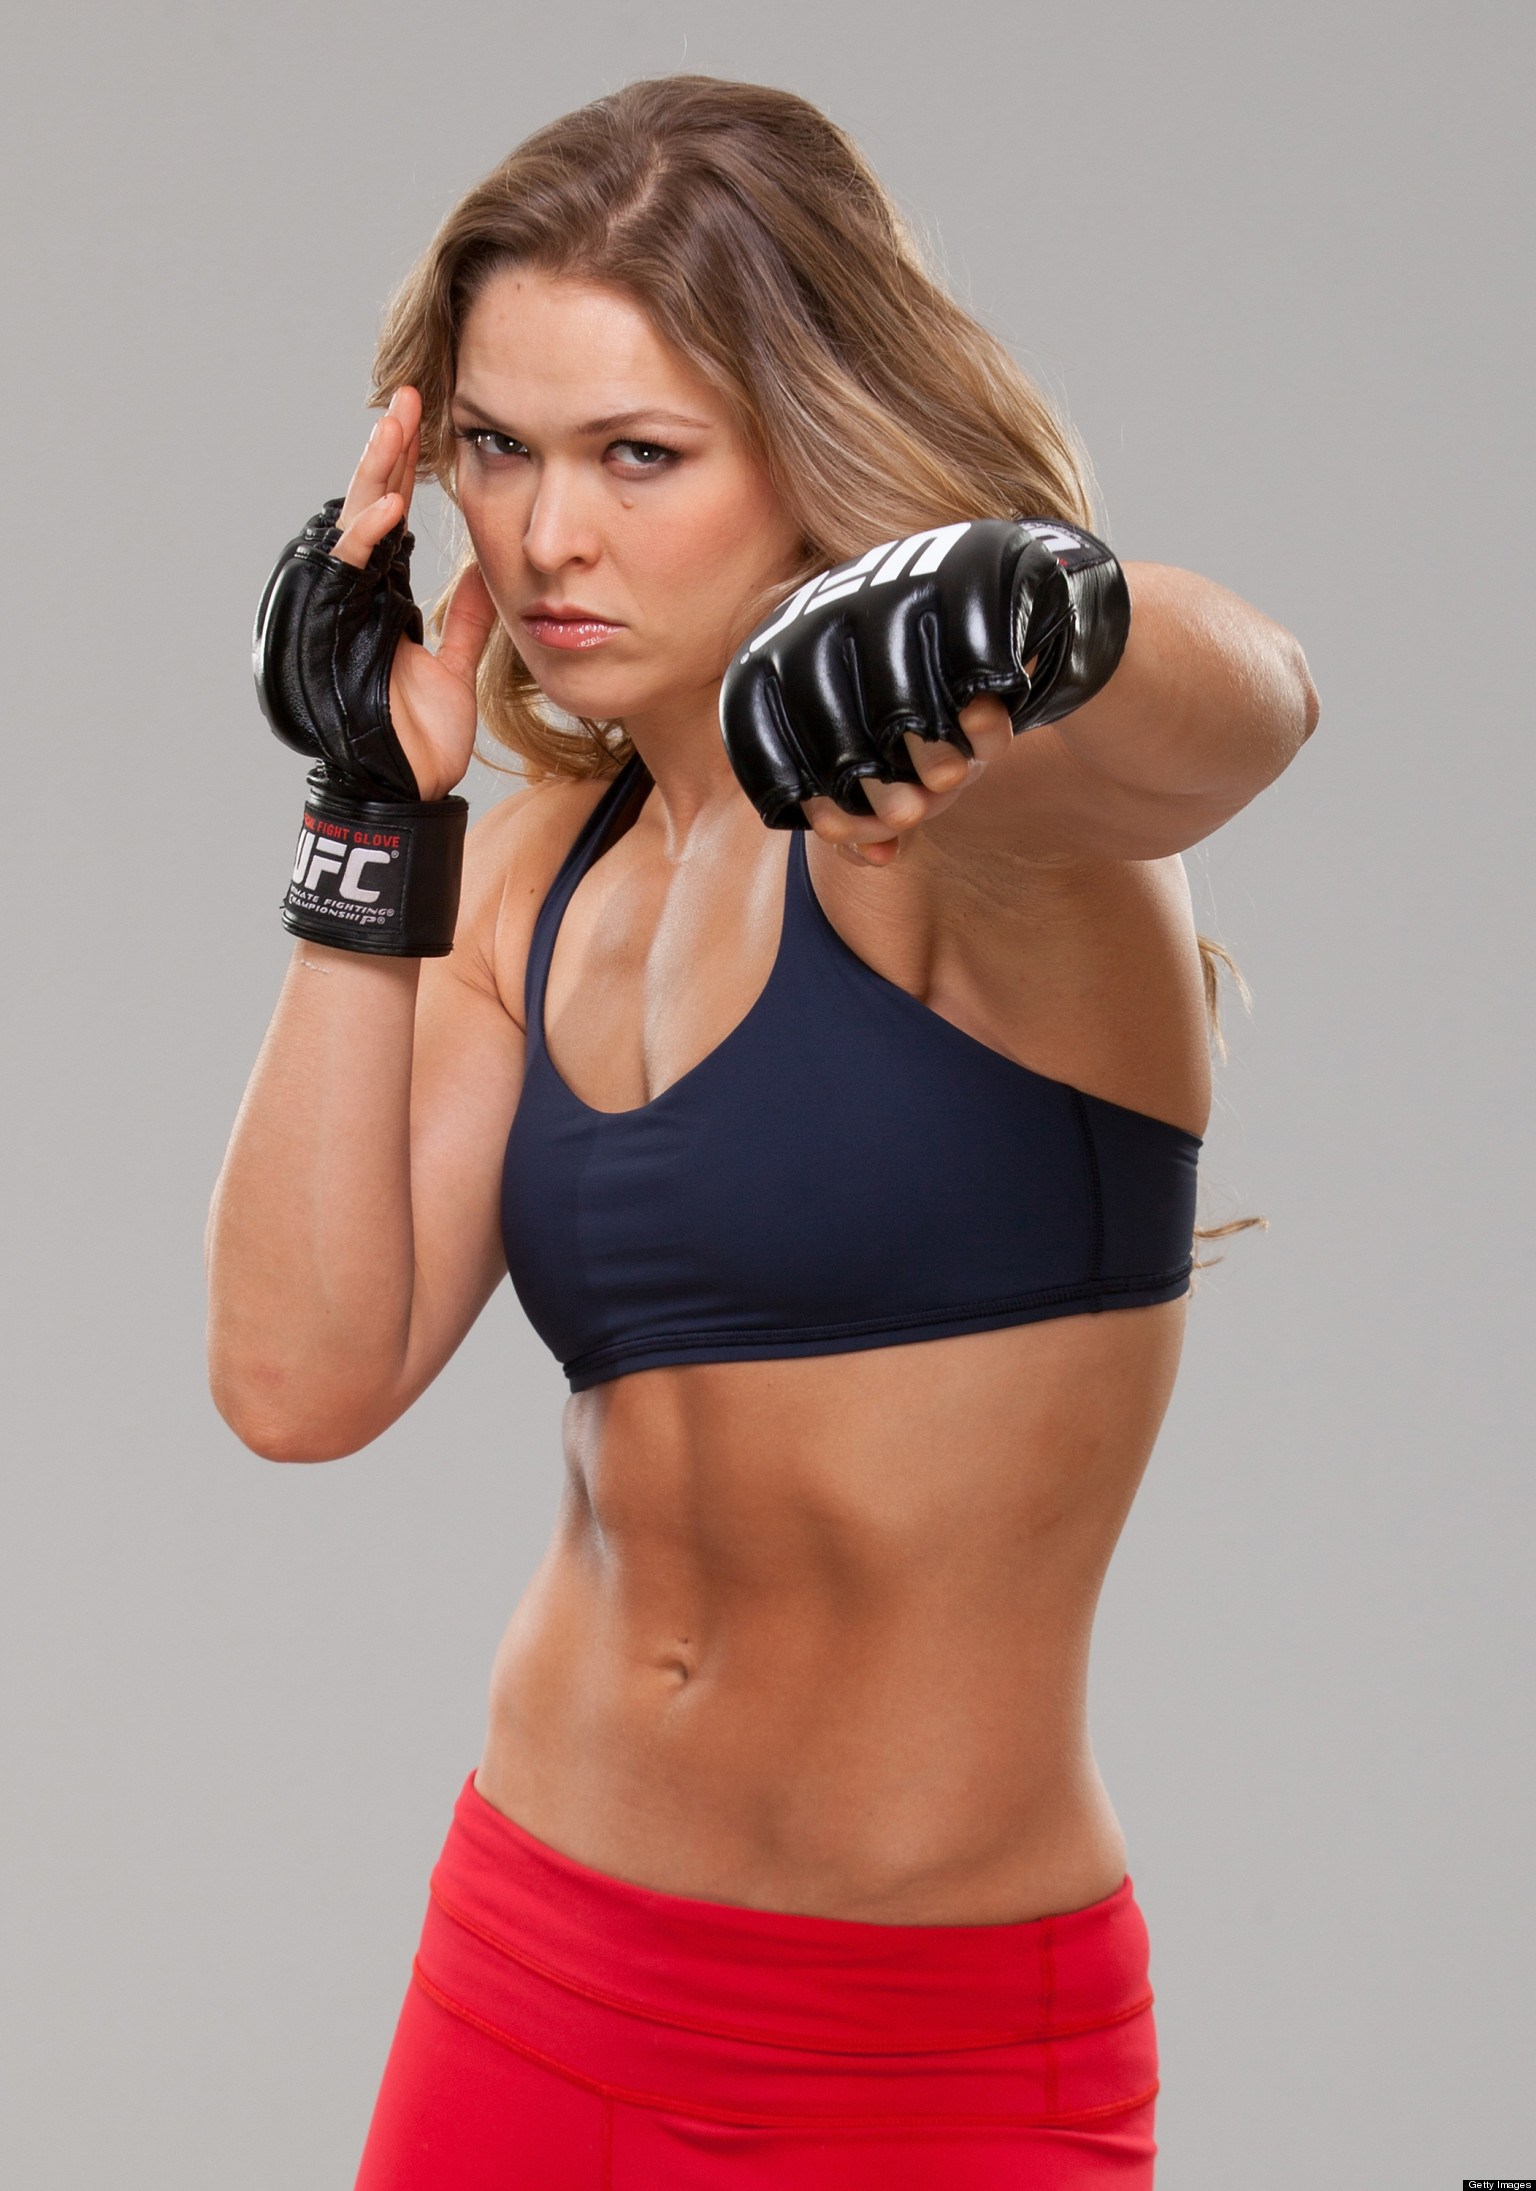 Ronda Rousey For mobile